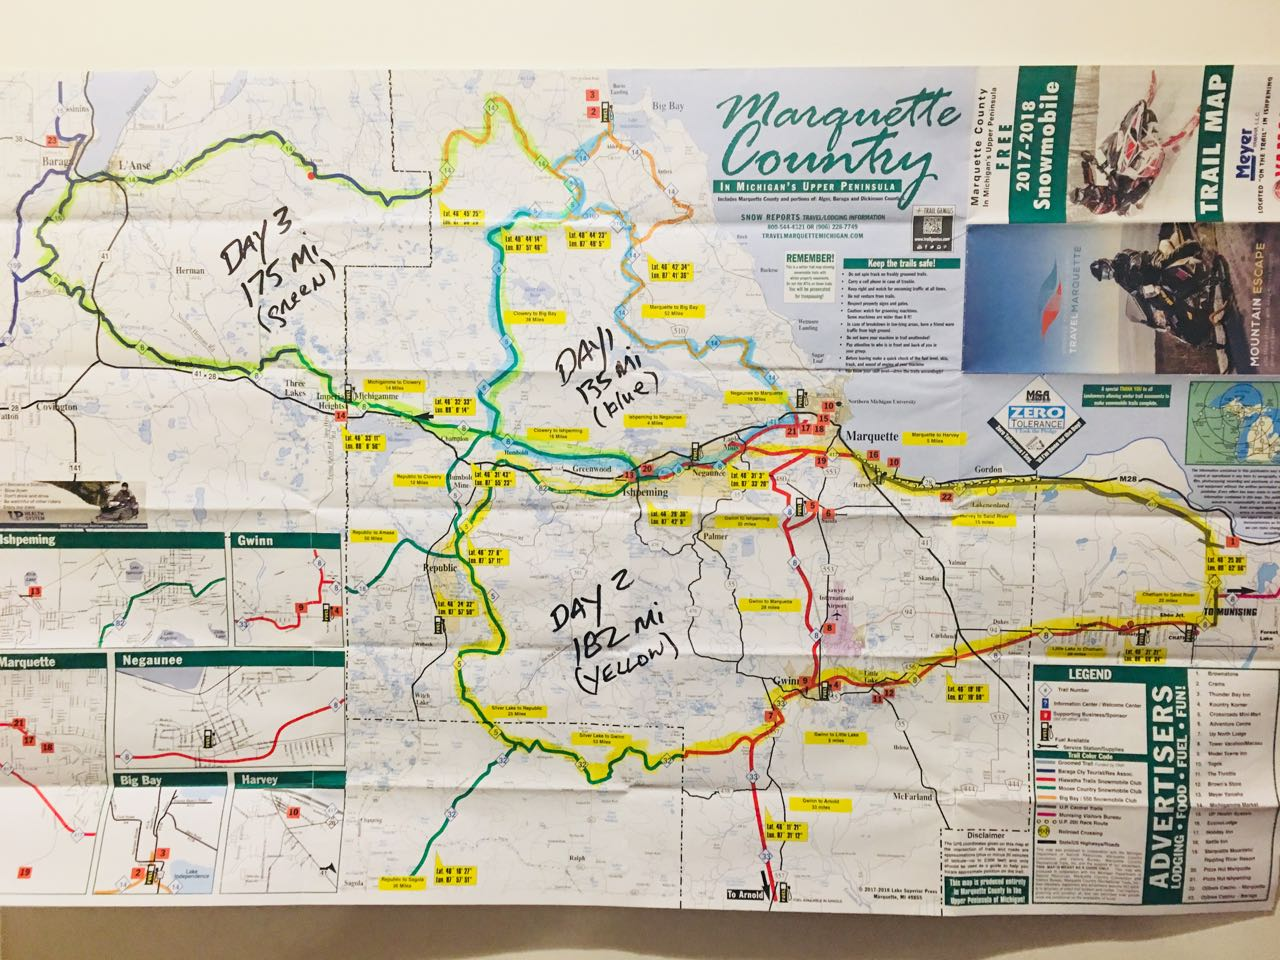 Snowmobile Michigan Upper Peninsula Tour Planner - Intrepid ... on county map of upper michigan, map of upper peninsula michigan, map upper peninsula mich, map of upper mi,